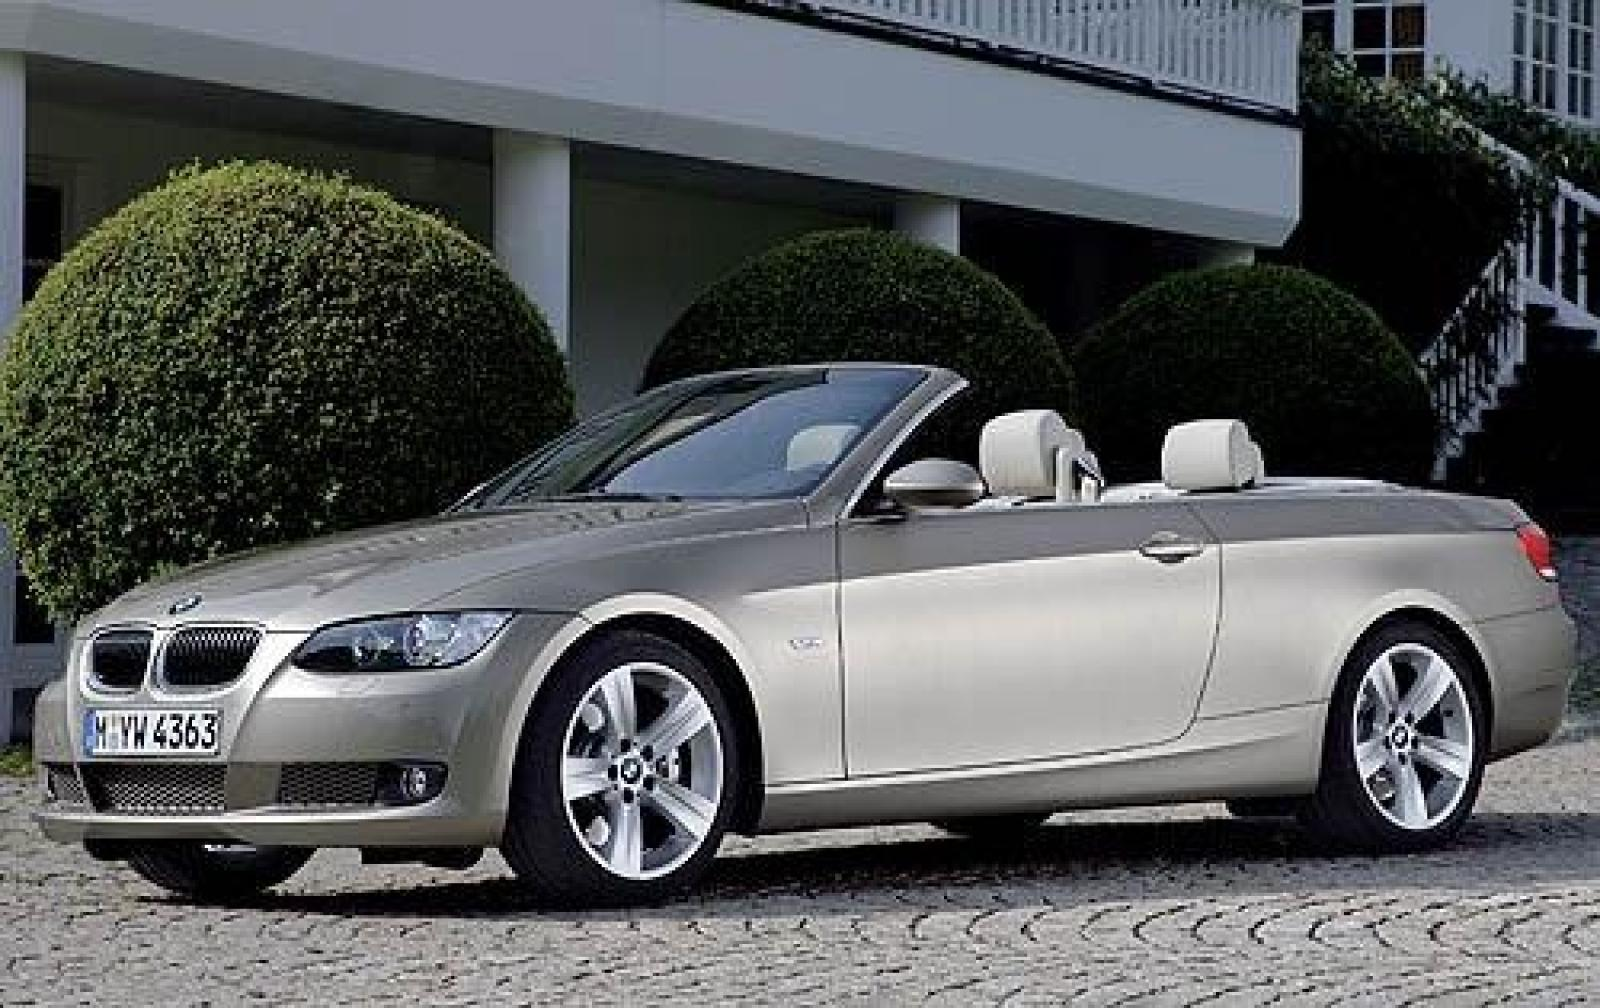 2008 bmw 3 series information and photos zomb drive. Black Bedroom Furniture Sets. Home Design Ideas